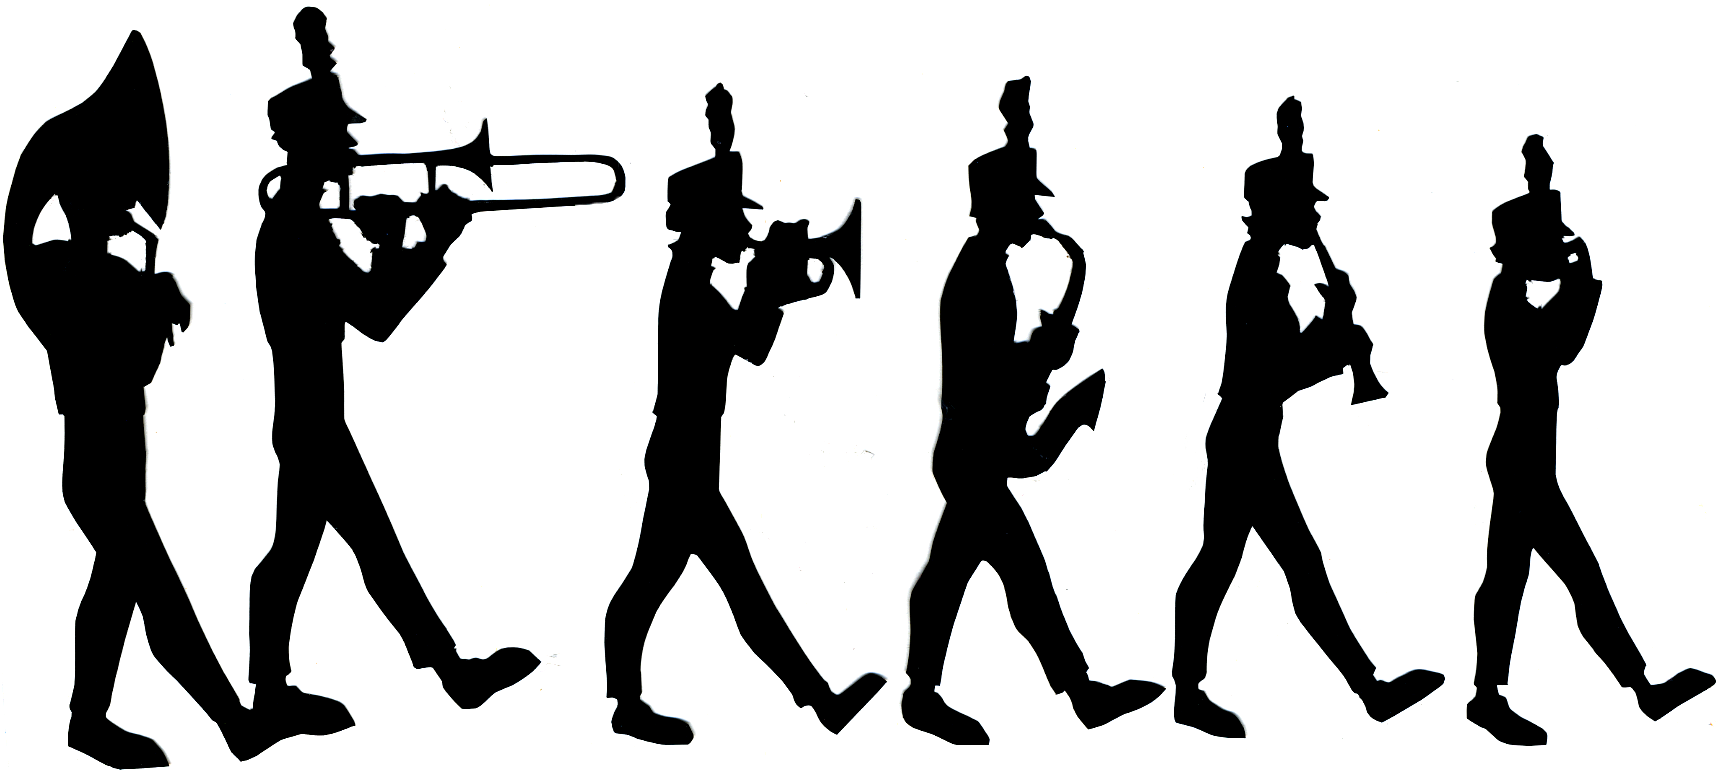 1726x774 Music Band Png Hd Transparent Music Band Hd.png Images. Pluspng